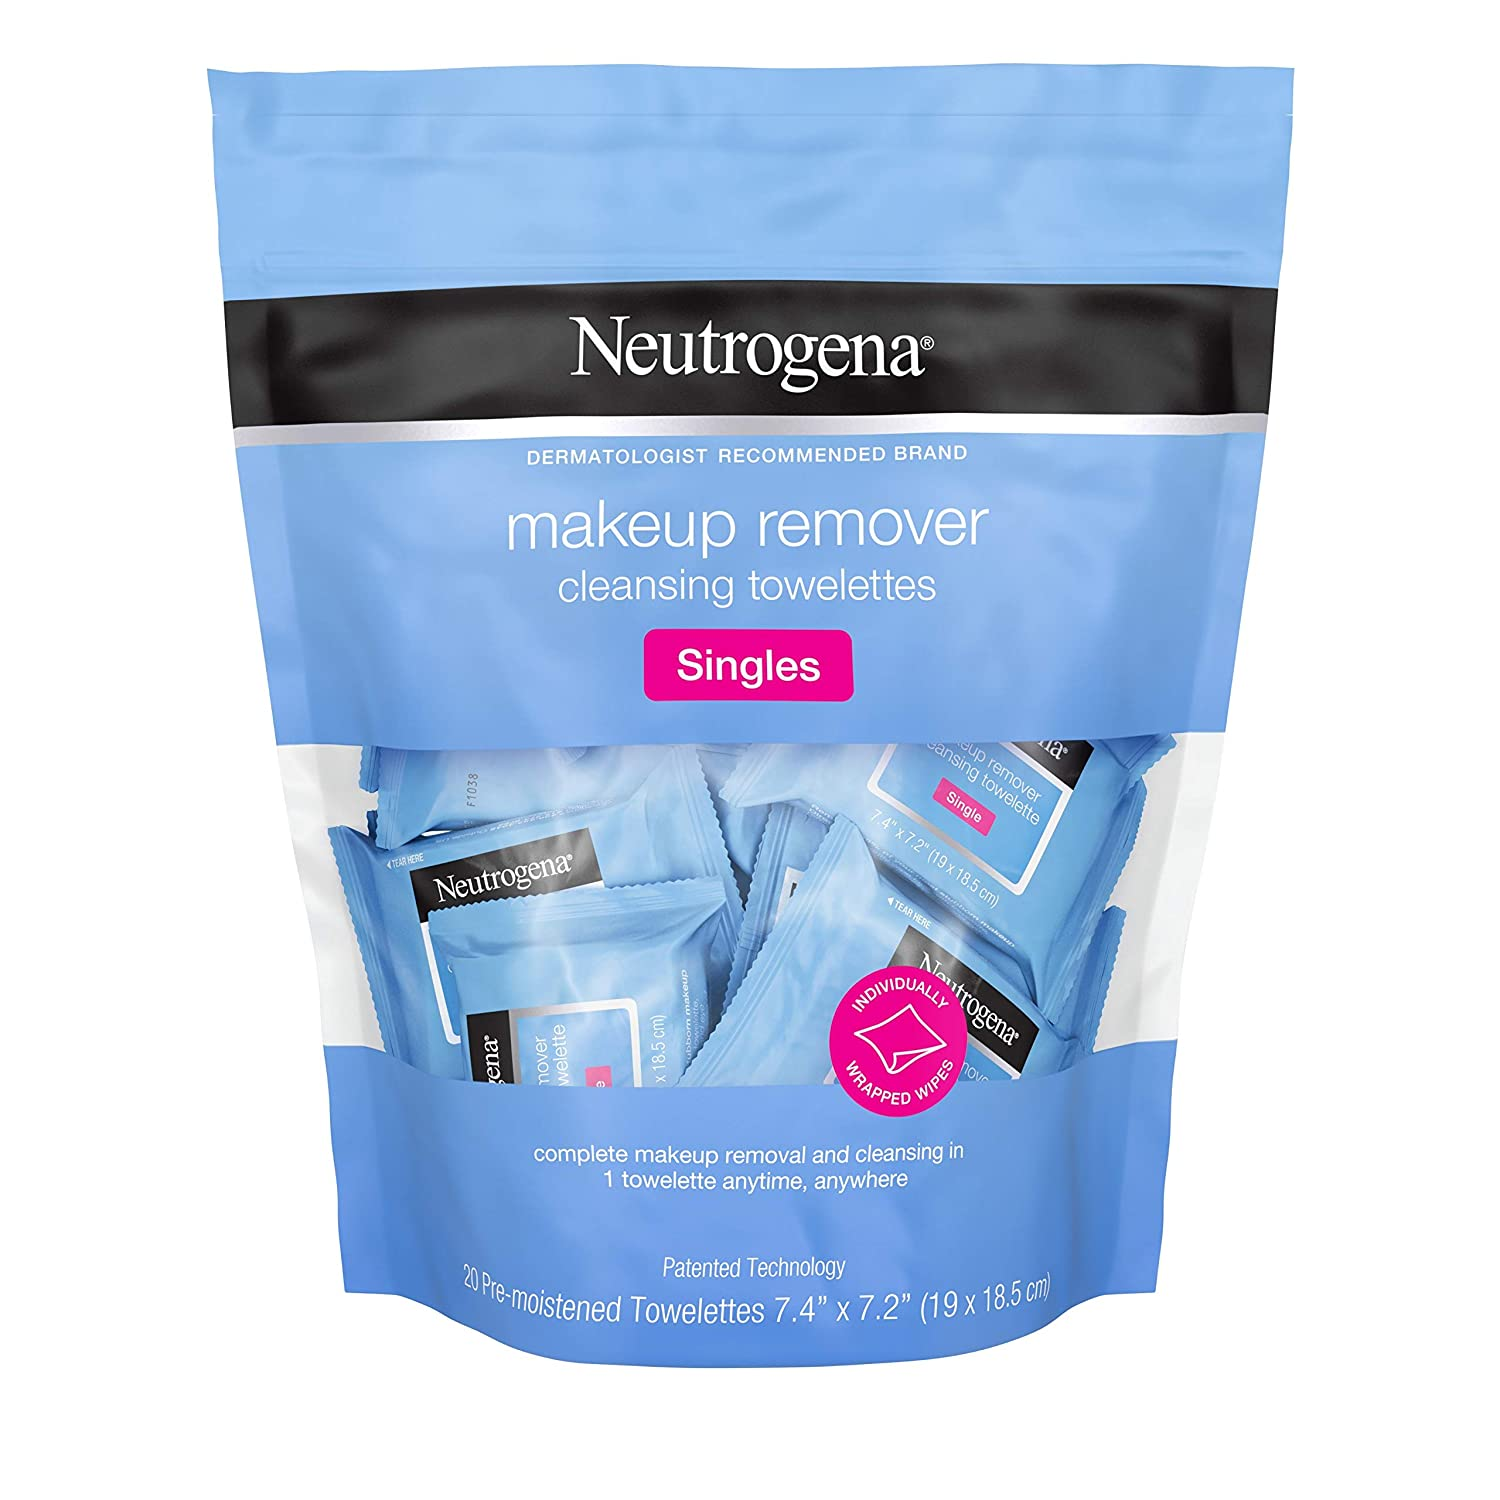 Neutrogena Makeup Remover Facial Cleansing Towelette Singles, Daily Face Wipes to Remove Dirt, Oil, Makeup & Waterproof Mascara, Gentle, Alcohol-Free, Individually Wrapped, 20 ct: Beauty